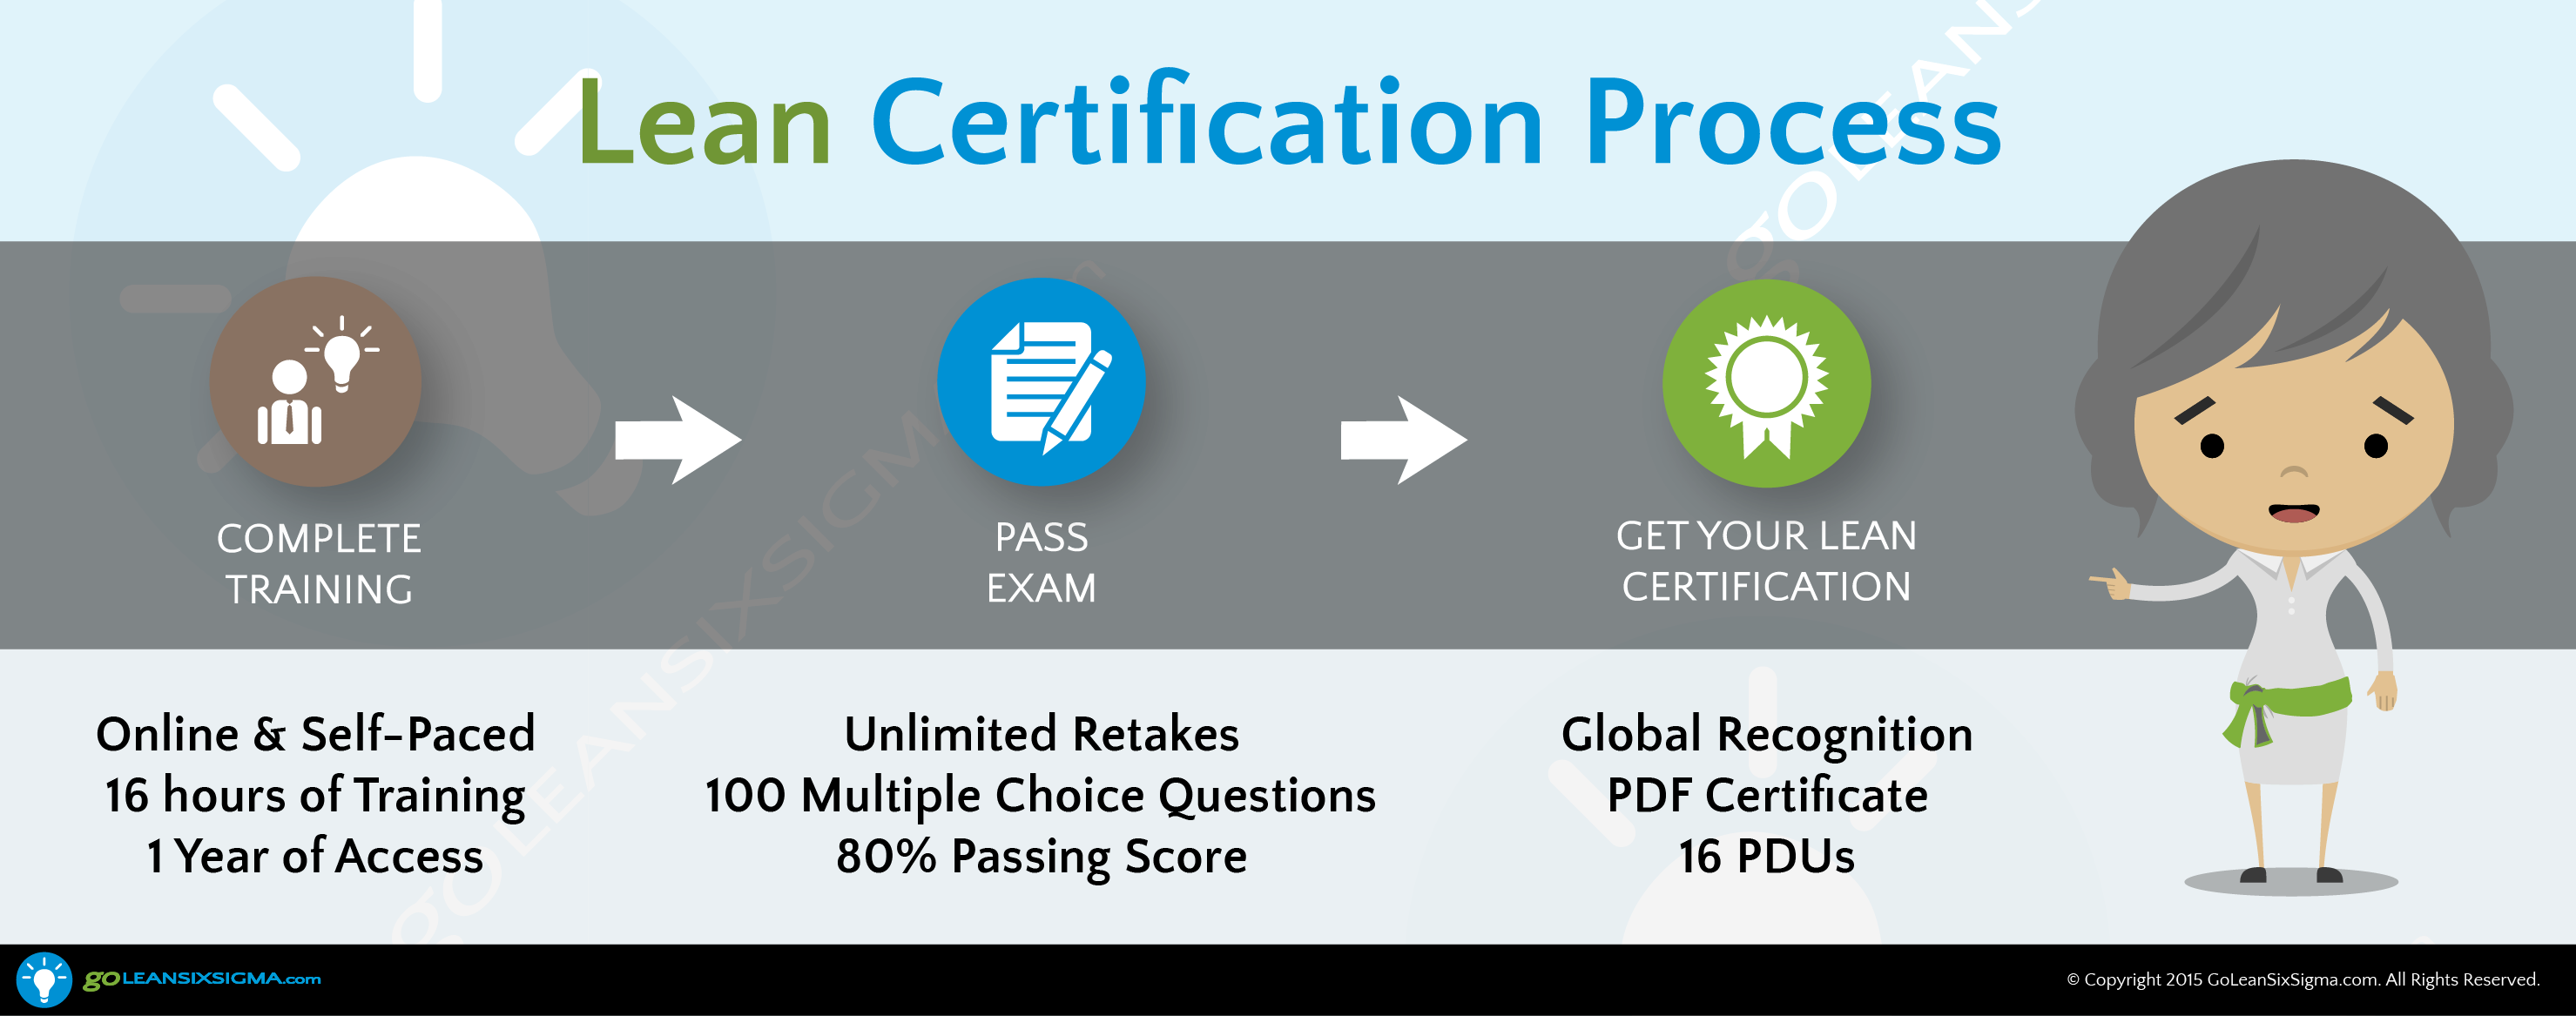 GLSS_CertificationProcess_Lean Cert_pro